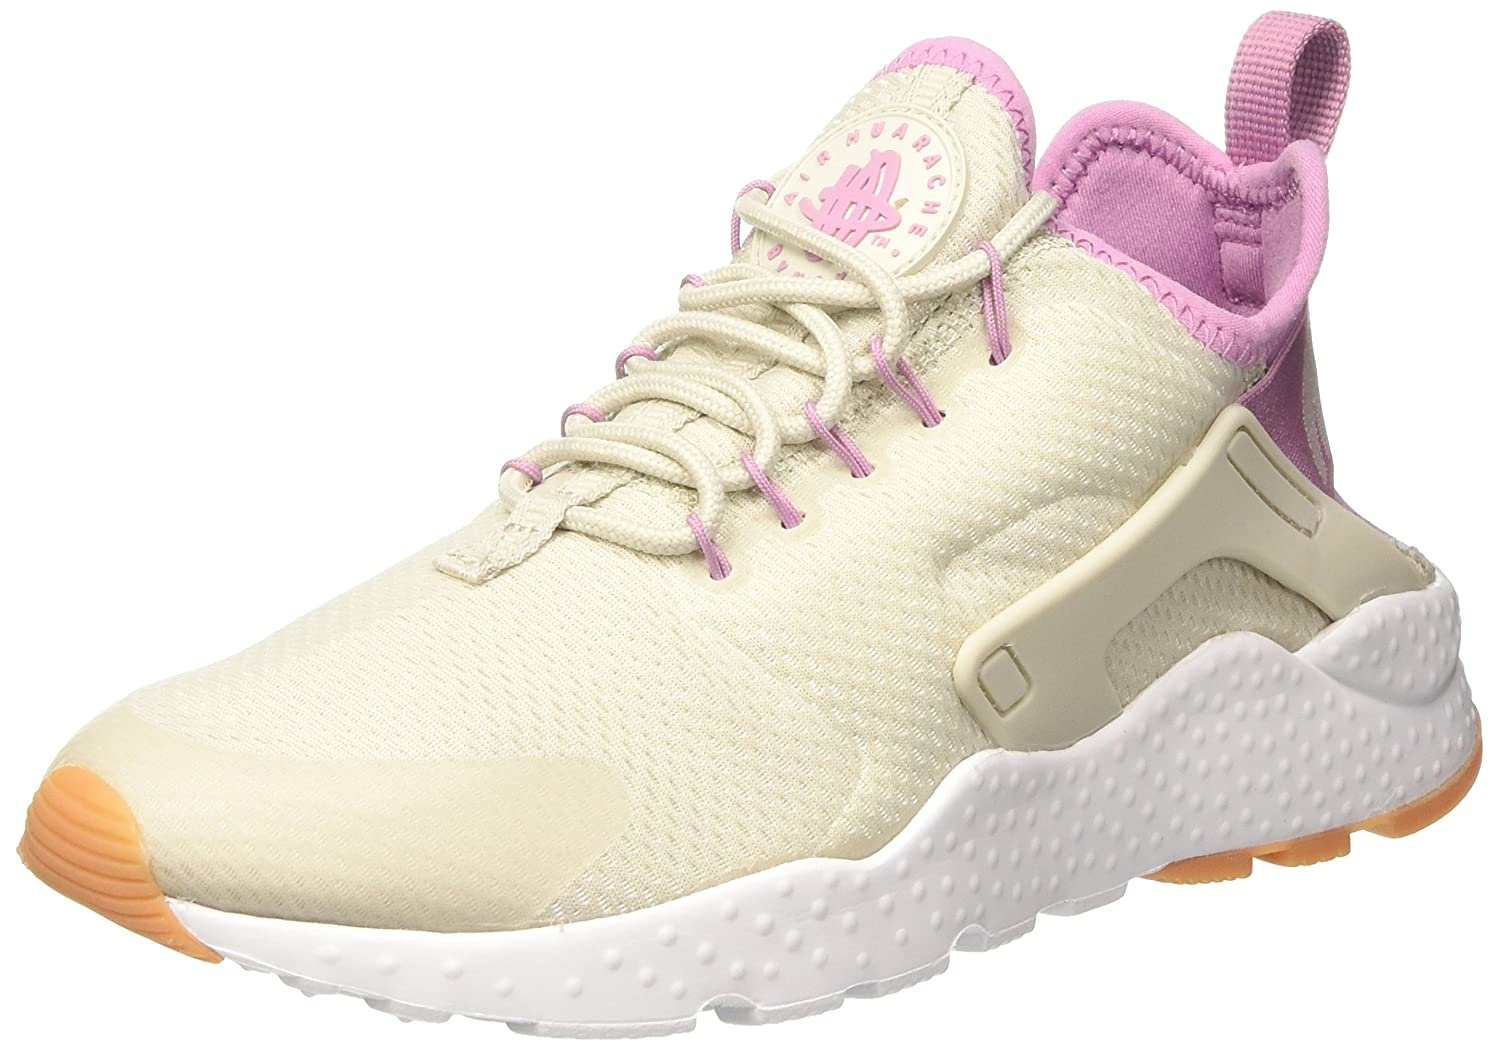 Nike Wmns Air Huarache Run Ultra, Entrenadores para Mujer 39 EU|Beige (Light Bone/Orchid/Gum Yellow/White)